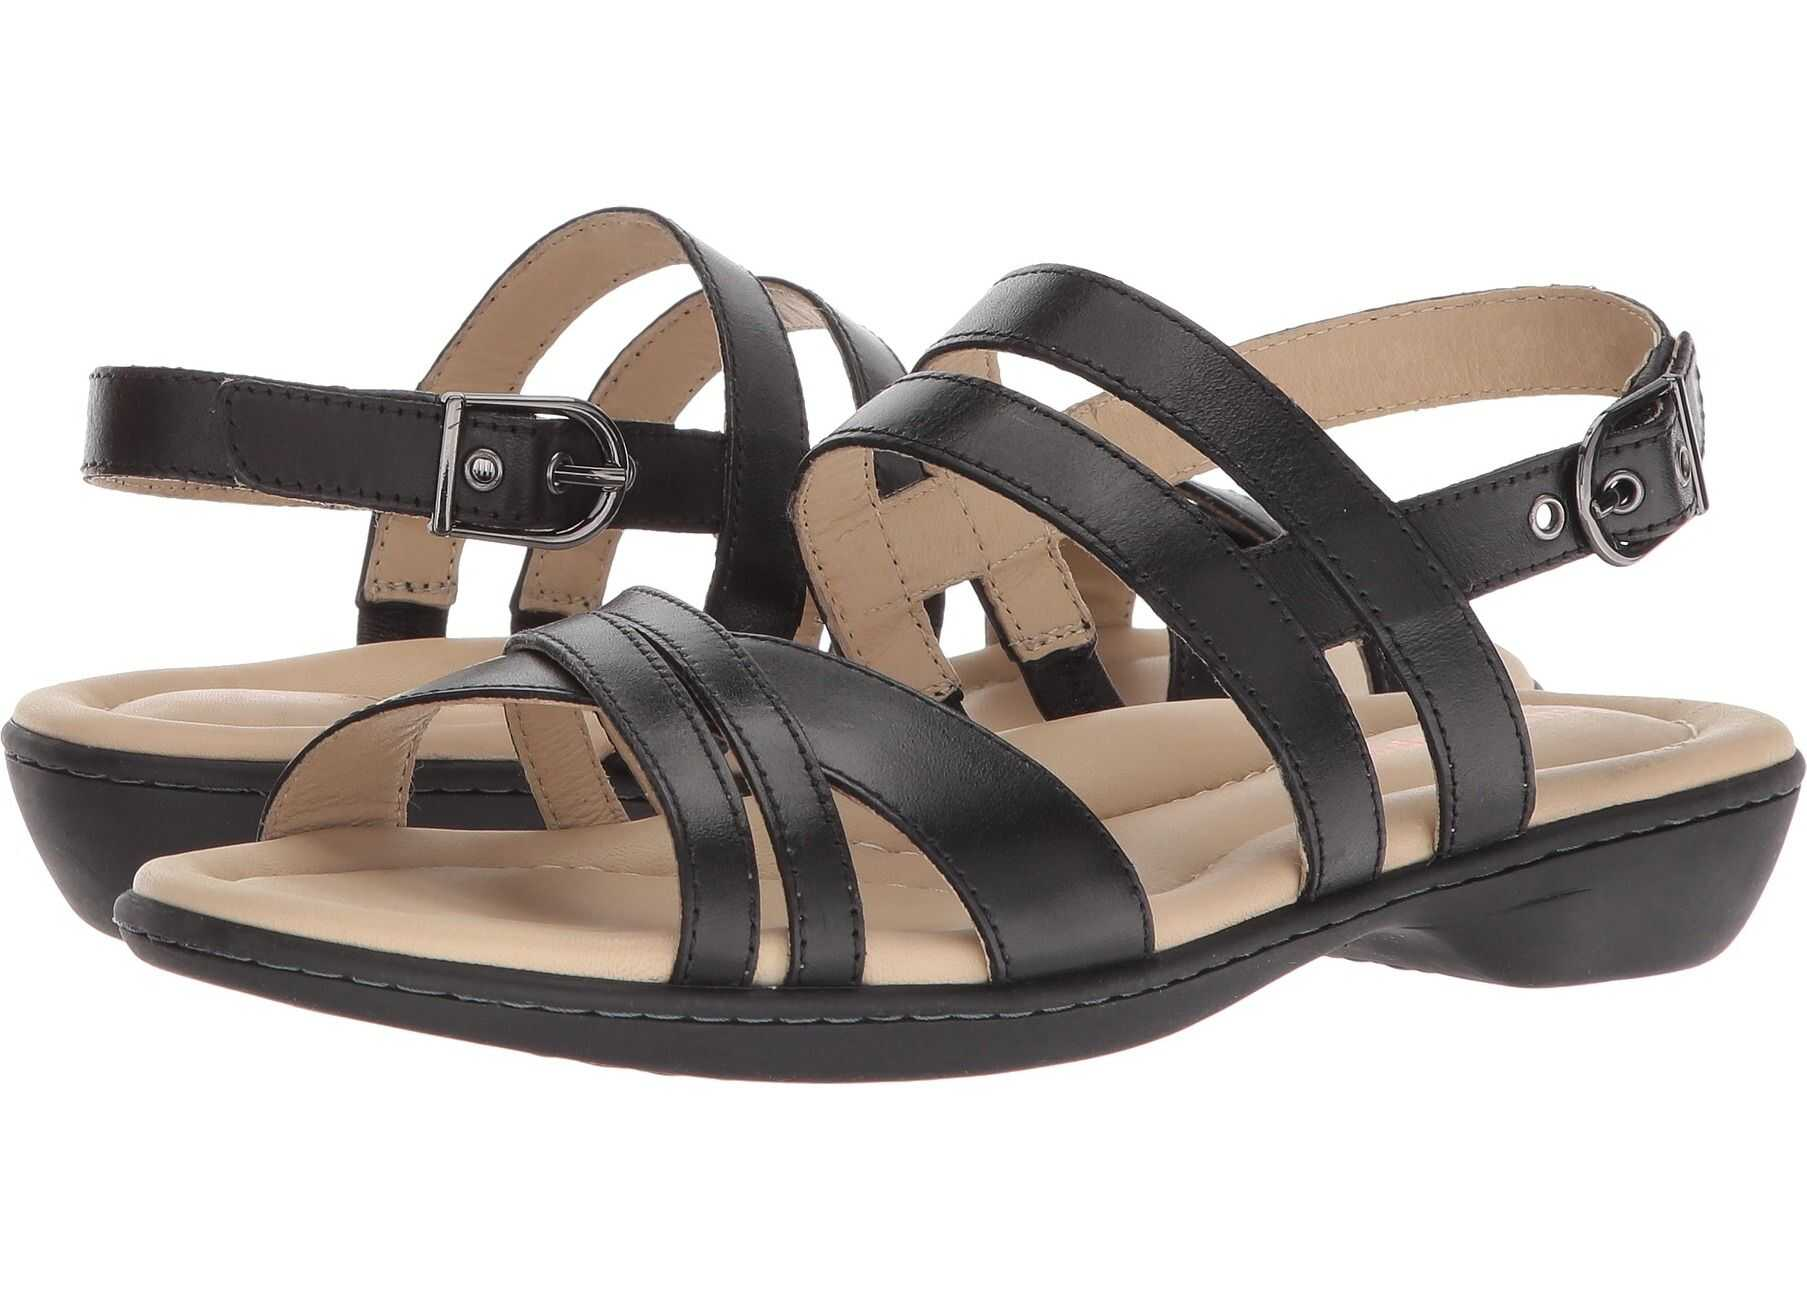 Hush Puppies Dachshund Strappy Black Leather